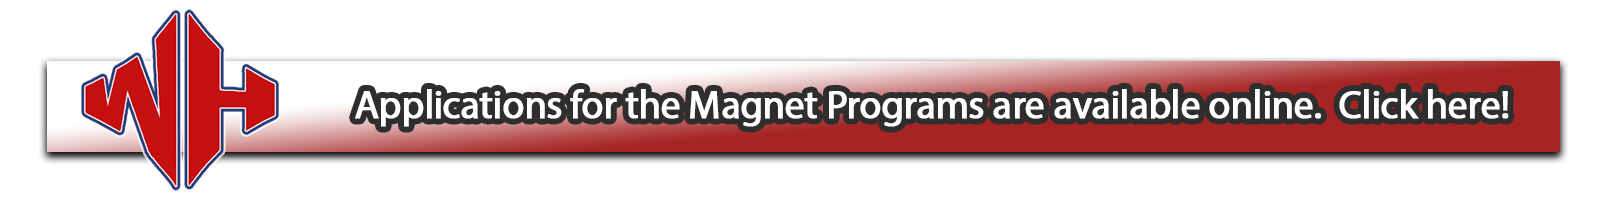 Westover Magnet Applications